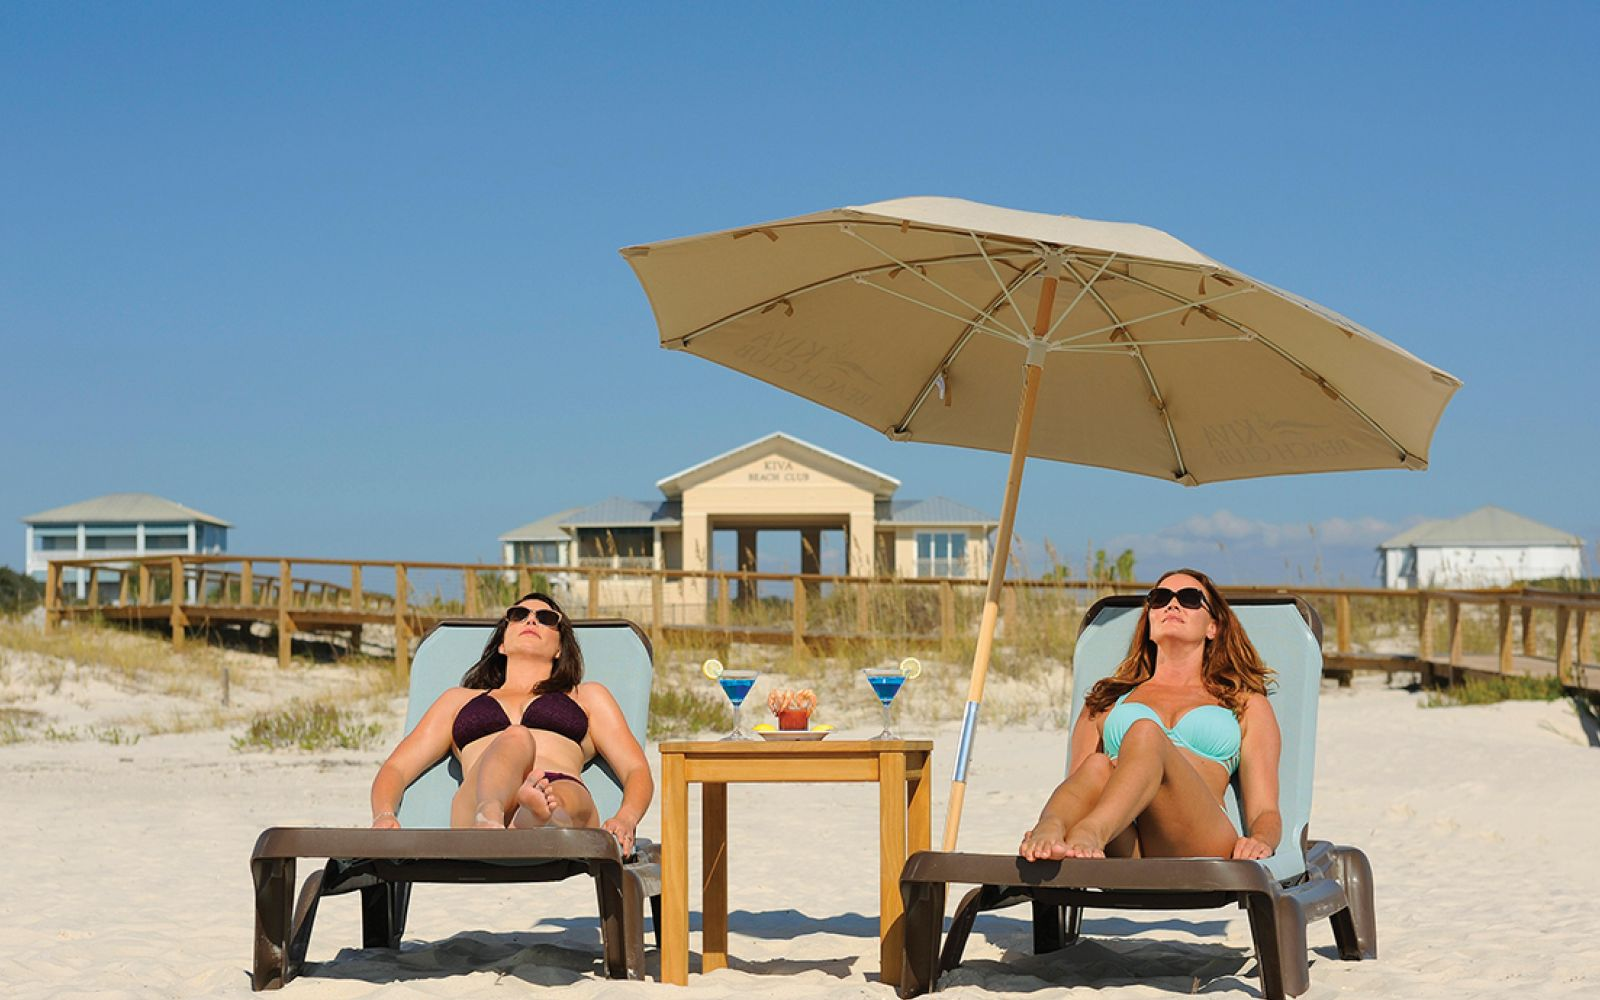 two women laying out on beach loungers underneath umbrella